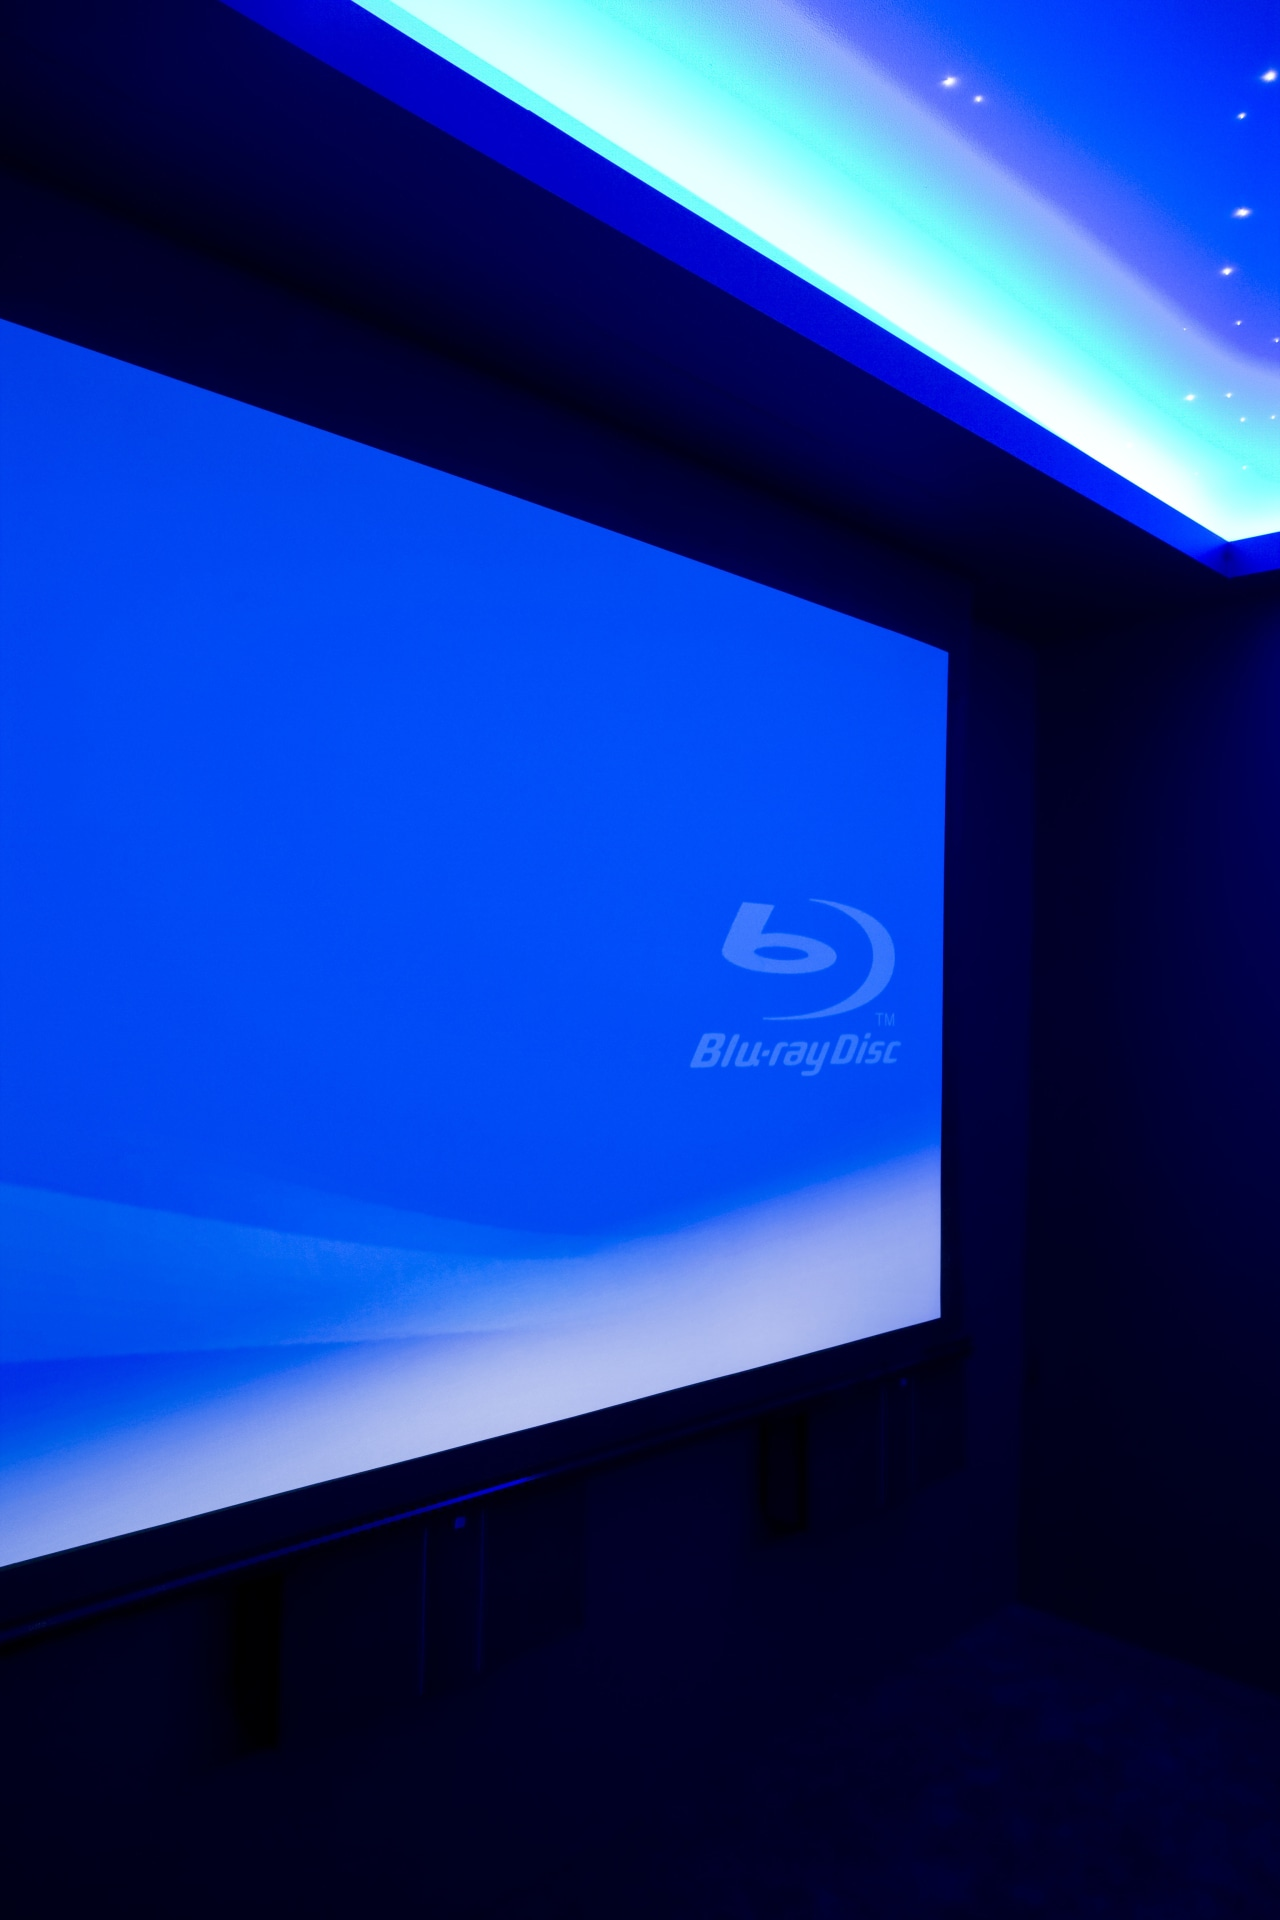 View of projector screen in home theatre. blue, computer wallpaper, display device, flat panel display, led backlit lcd display, light, lighting, multimedia, projection screen, sky, technology, blue